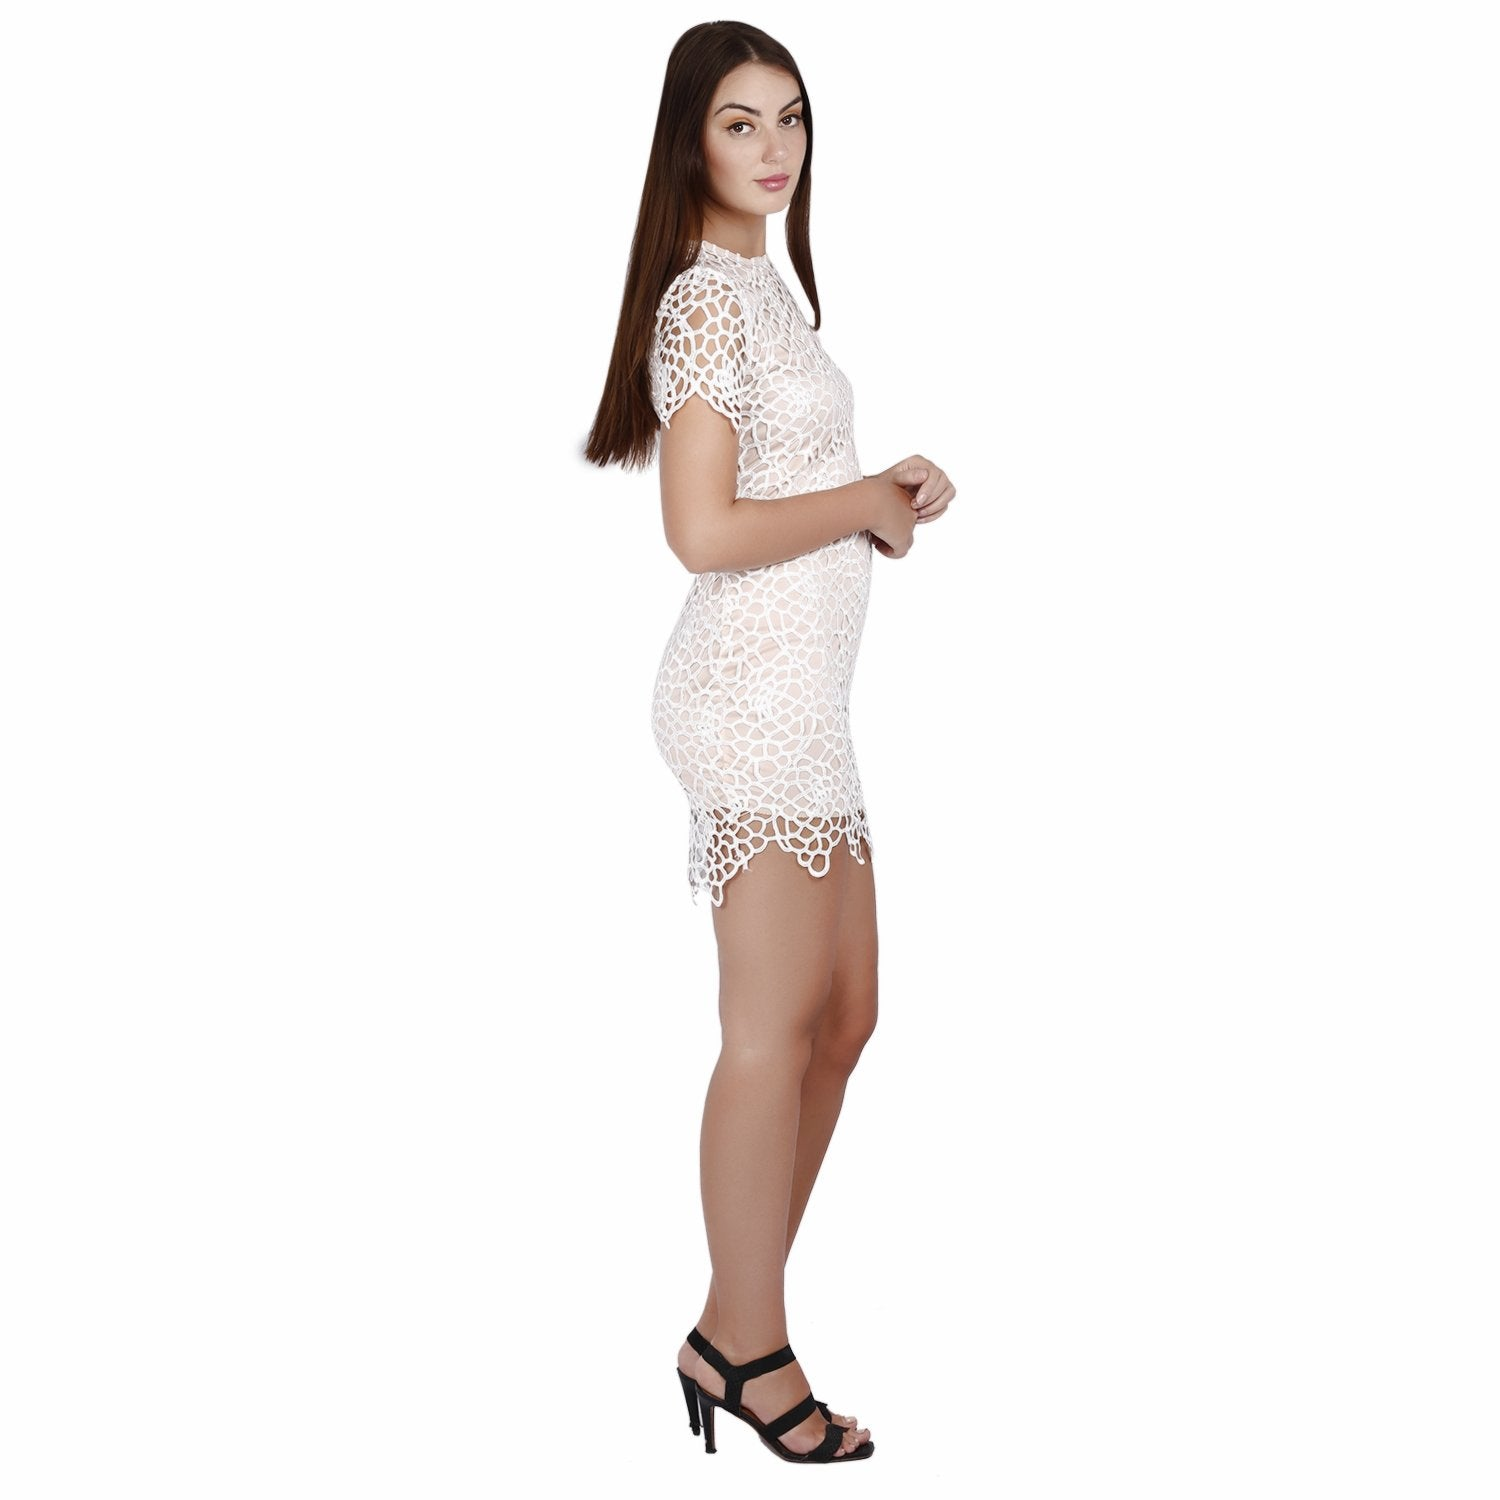 The Honeycomb Glamour Dress - White